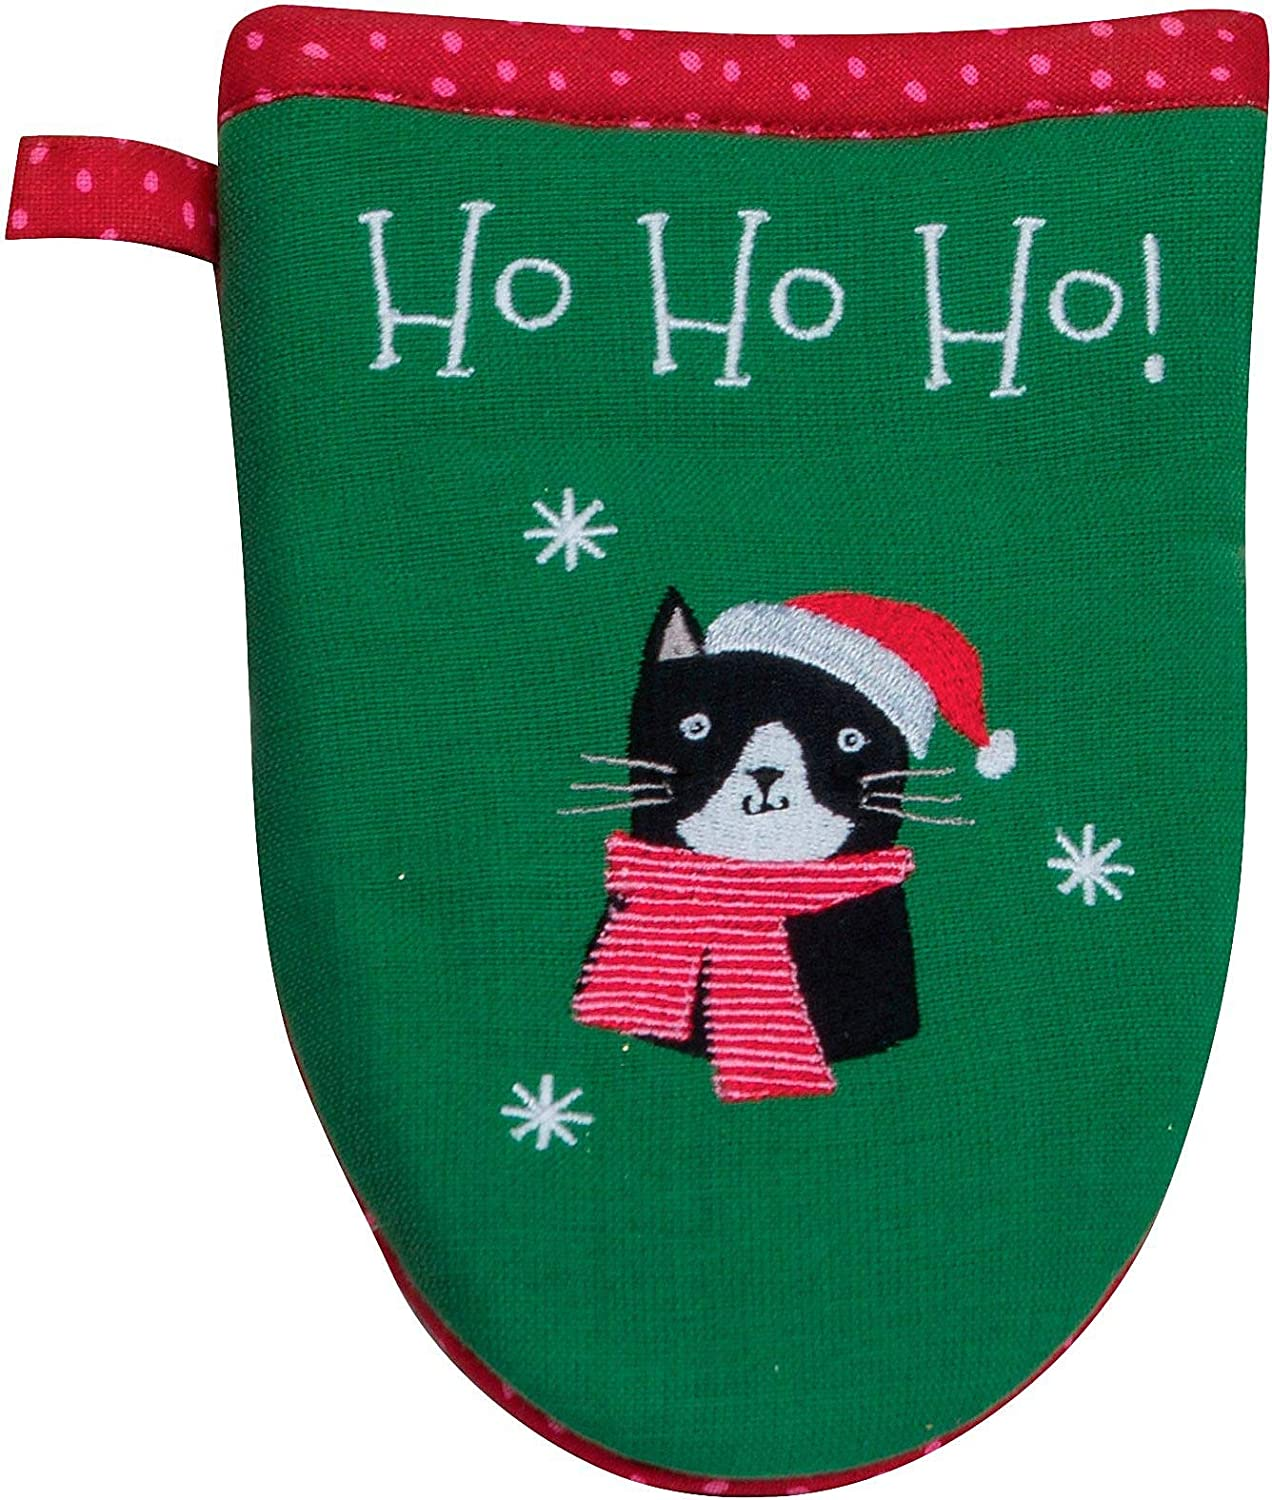 Kay Dee Ho Ho Ho Red Green Cat Embroidered Christmas 11 inch Cotton Decorative Grabber Mitt